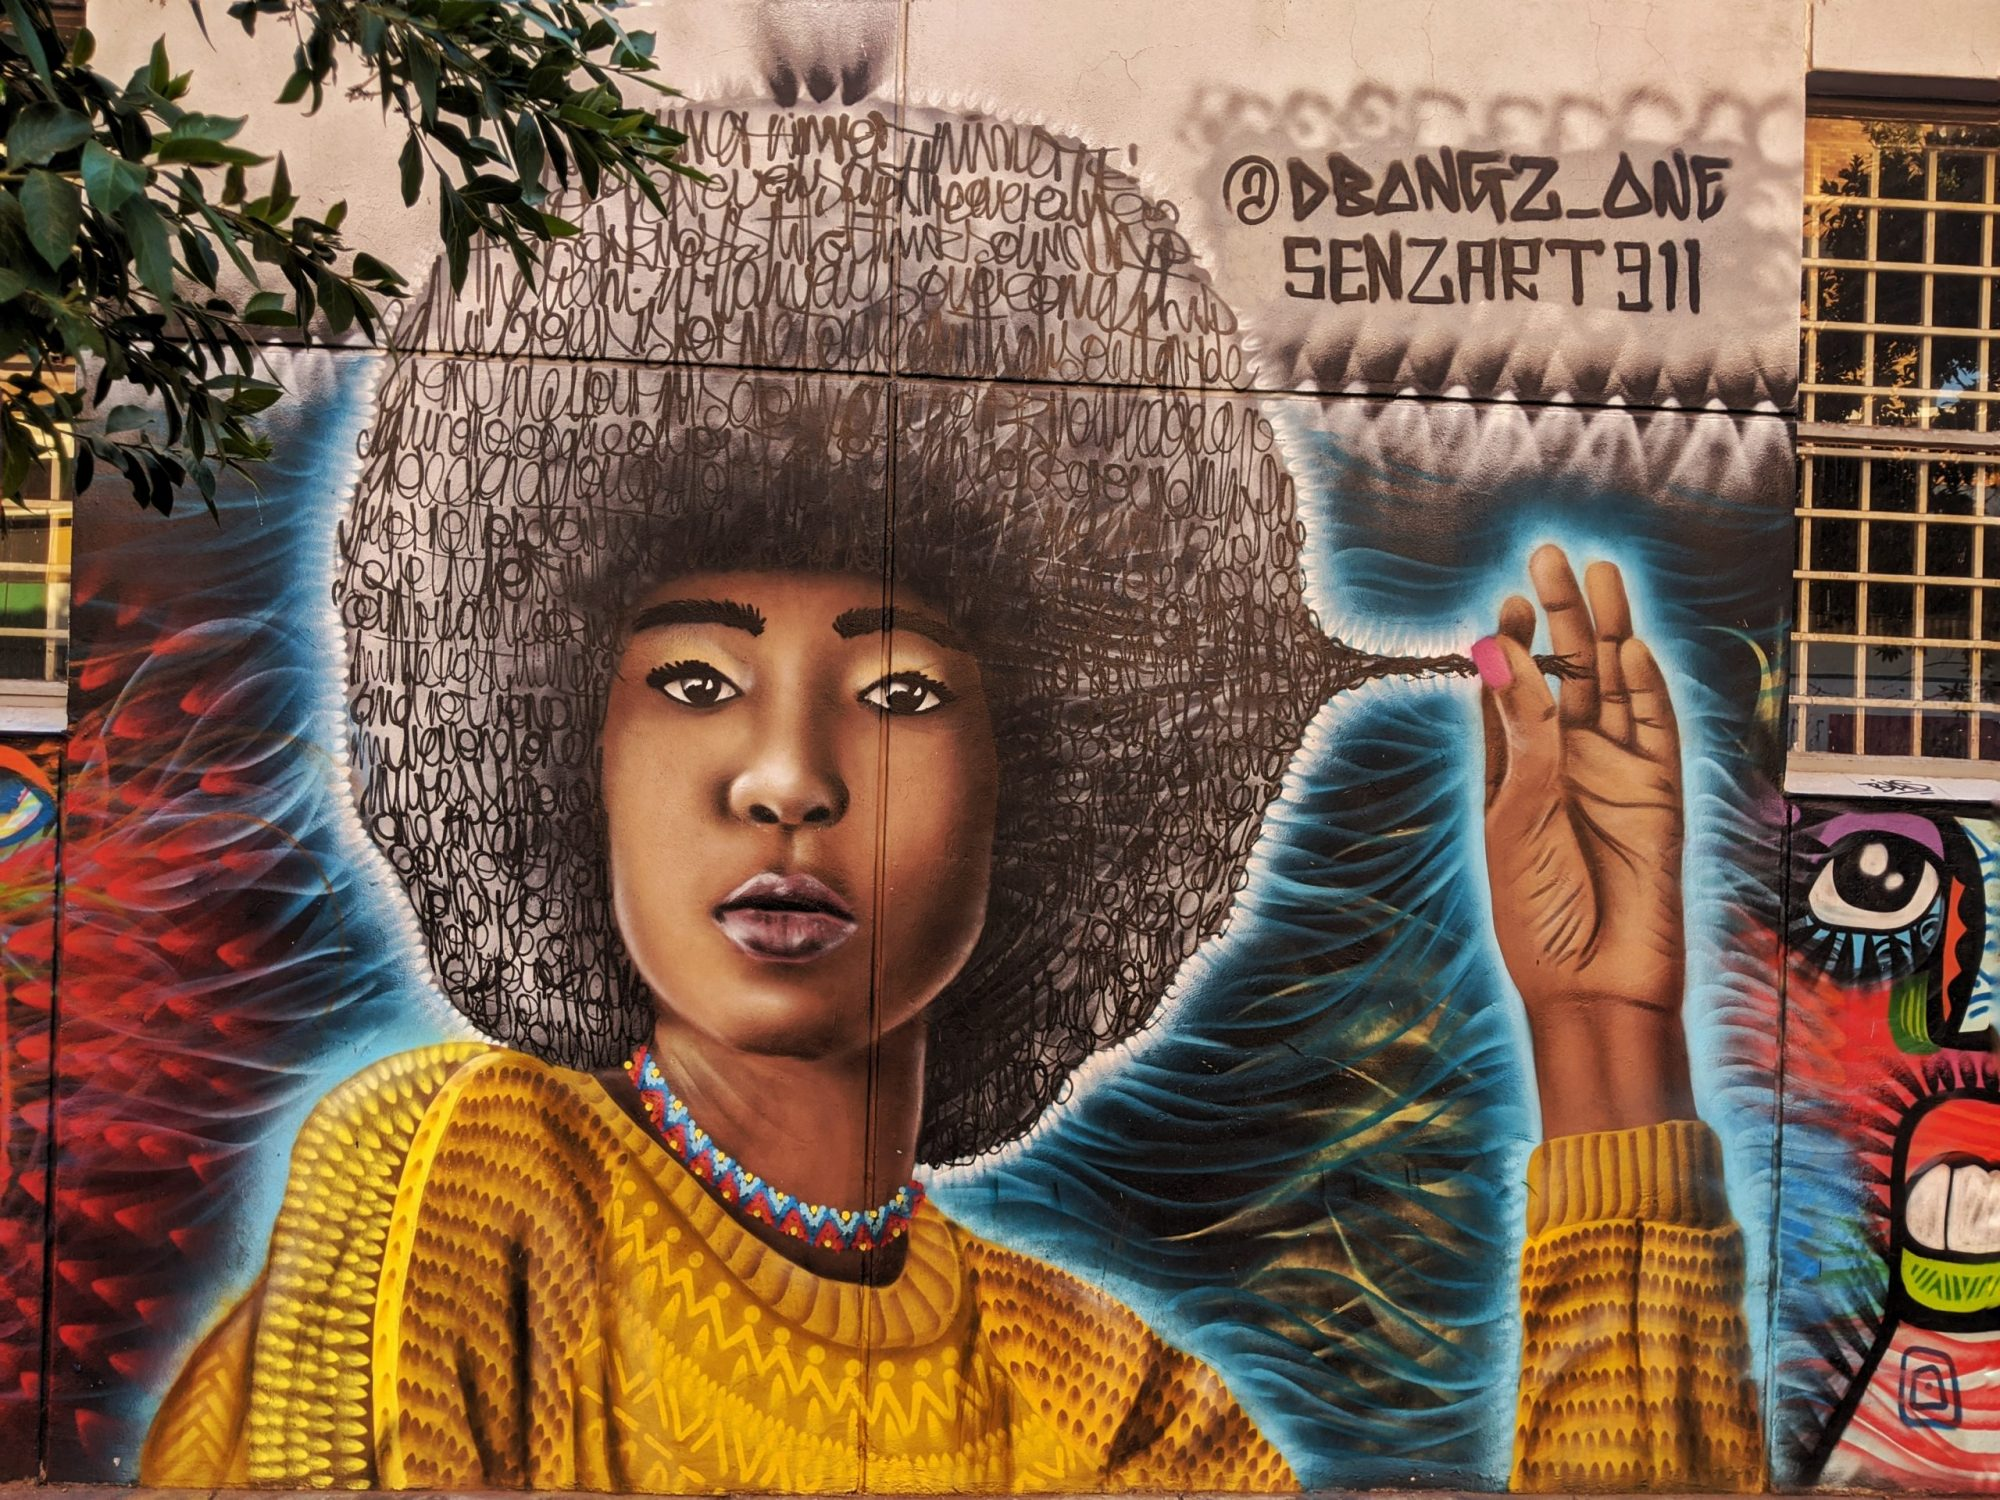 Street art portrait of a black woman with an afro in South Africa - unique destinations